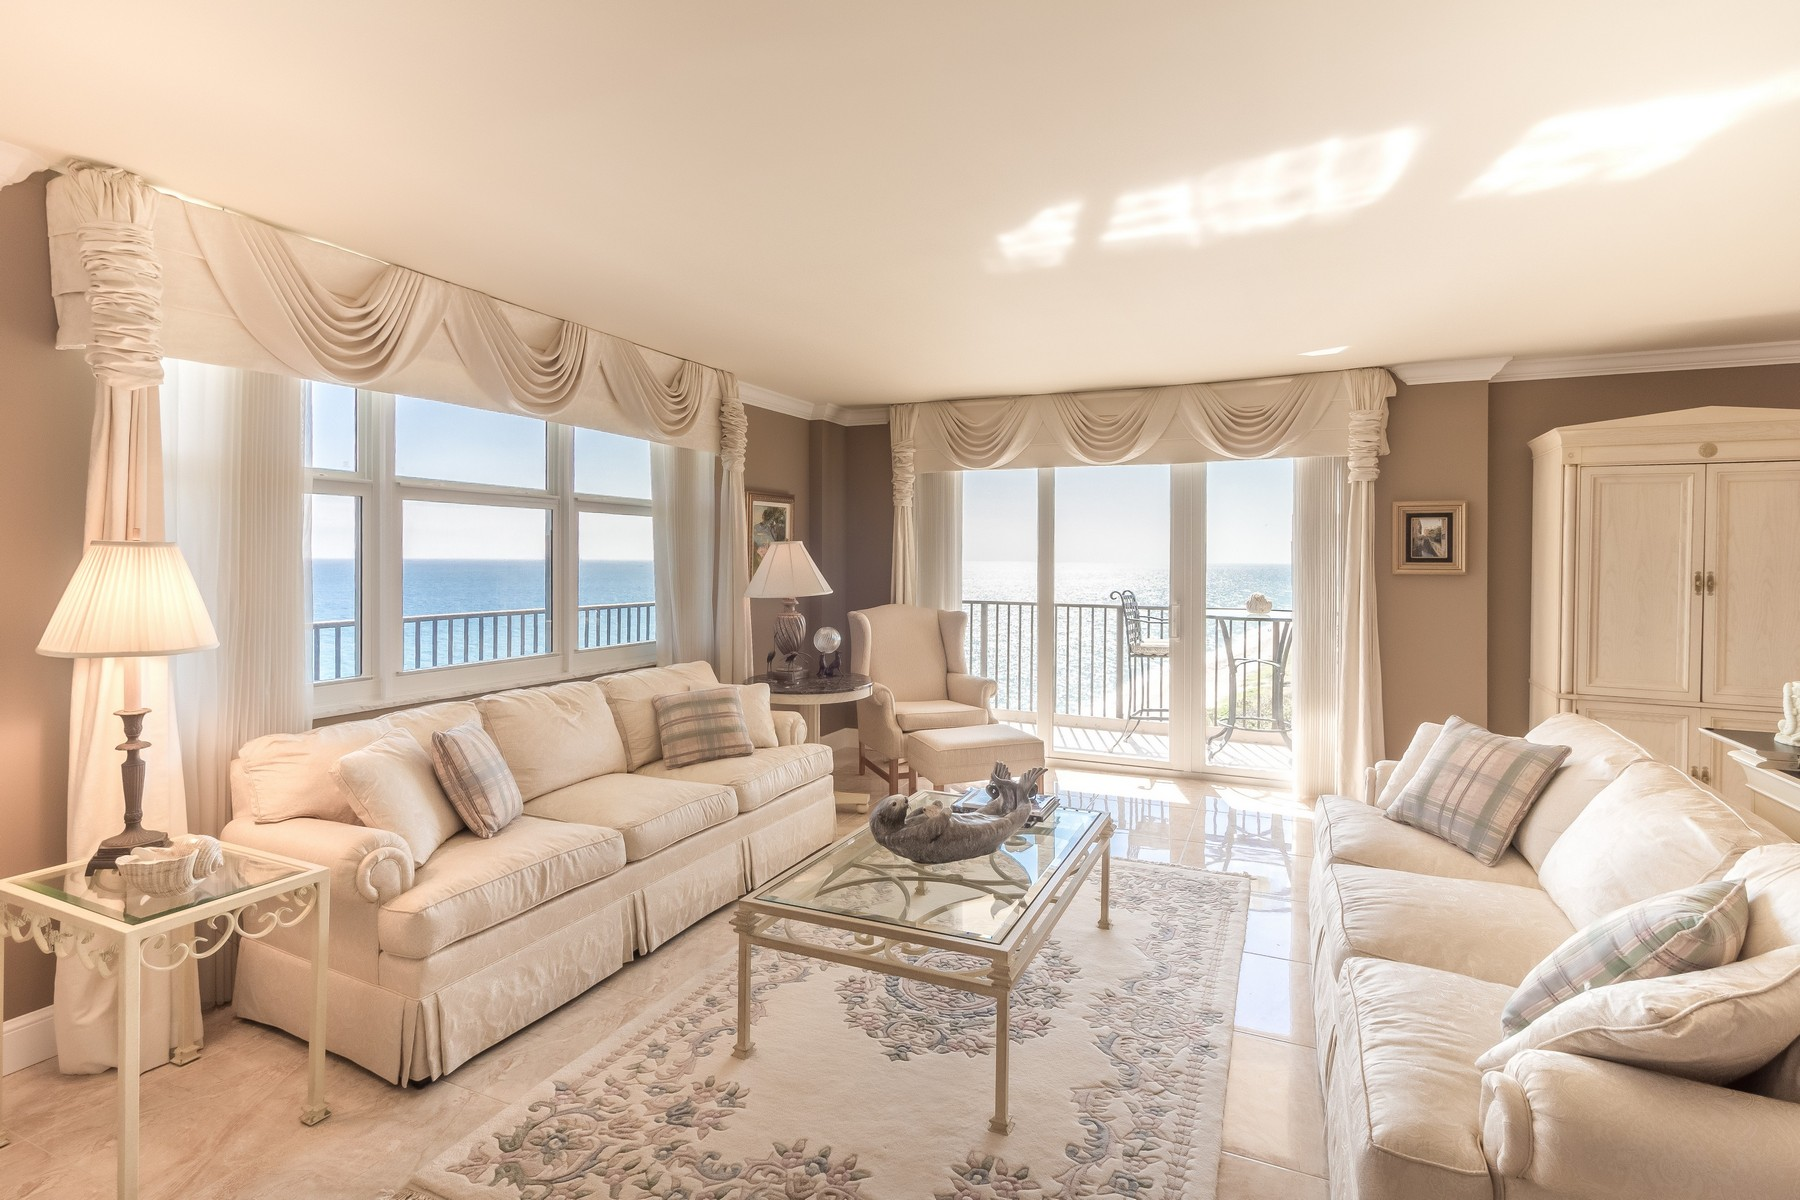 Condominium for Sale at 1149 Hillsboro Mile , Ph1010 & Ph, Hillsboro Beach 1149 Hillsboro Mile 1010 Hillsboro Beach, Florida 33062 United States